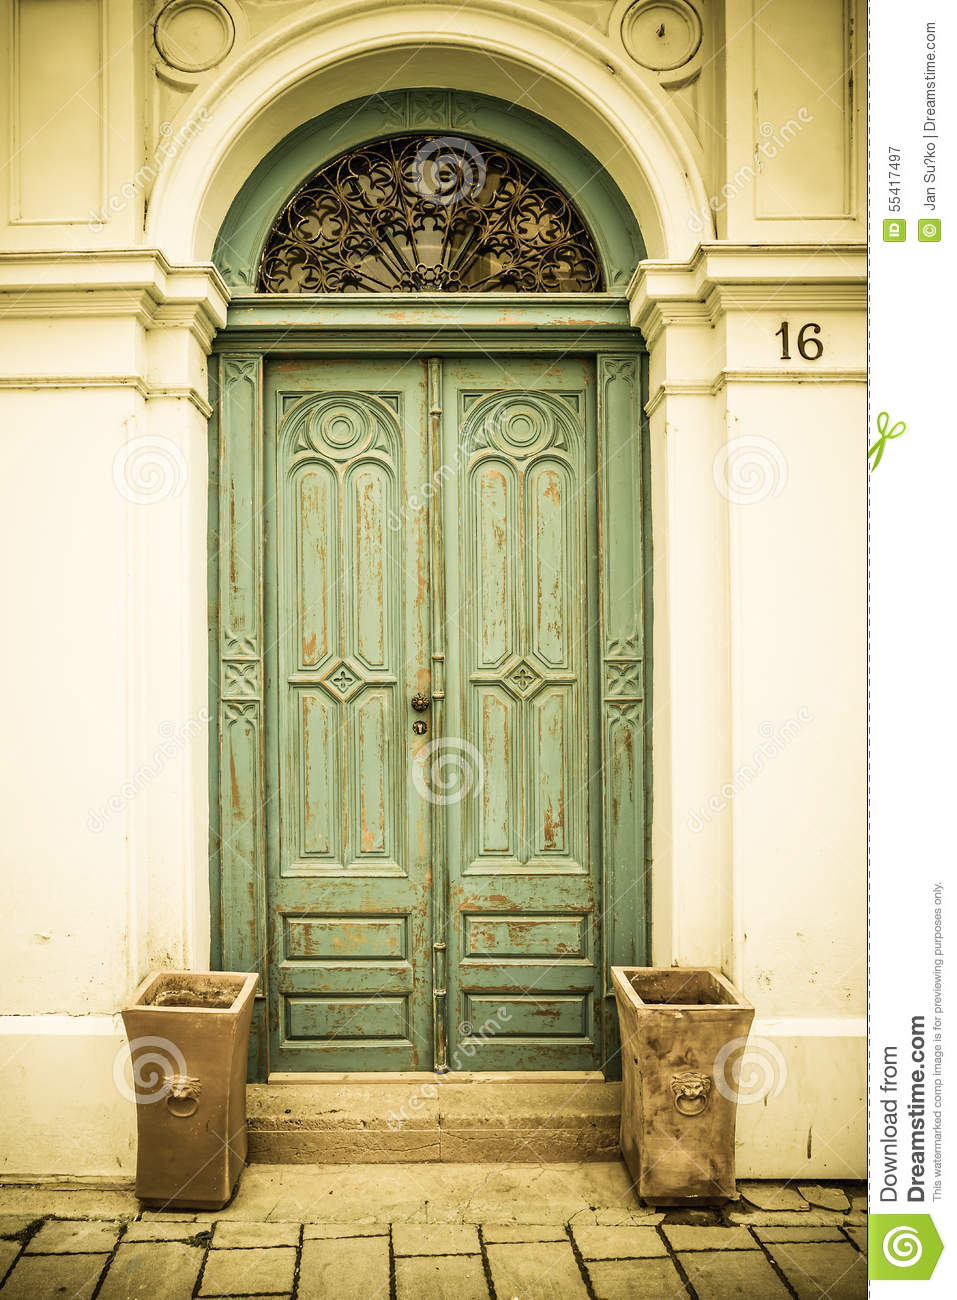 Old wooden door in vintage style & Old Wooden Door In Vintage Style Stock Image - Image of shine ...